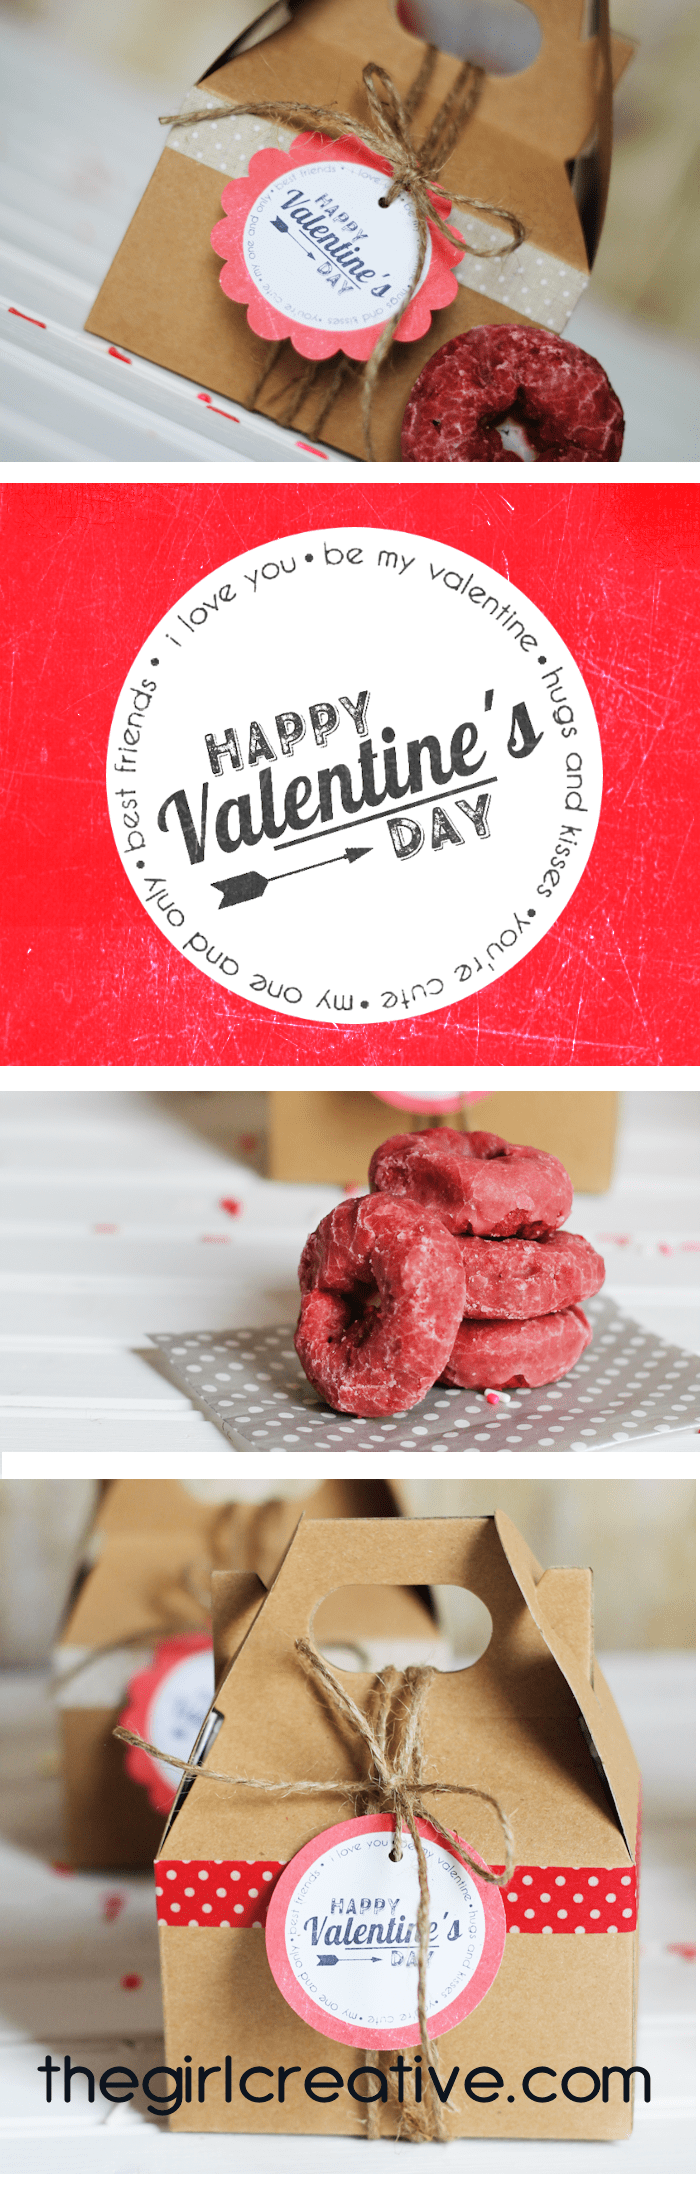 Valentine's Day Donuts with Printable Vintage Tags - This is the perfect take home treat for any Valentine's Day party - complete with printable Valentine's Day tags.